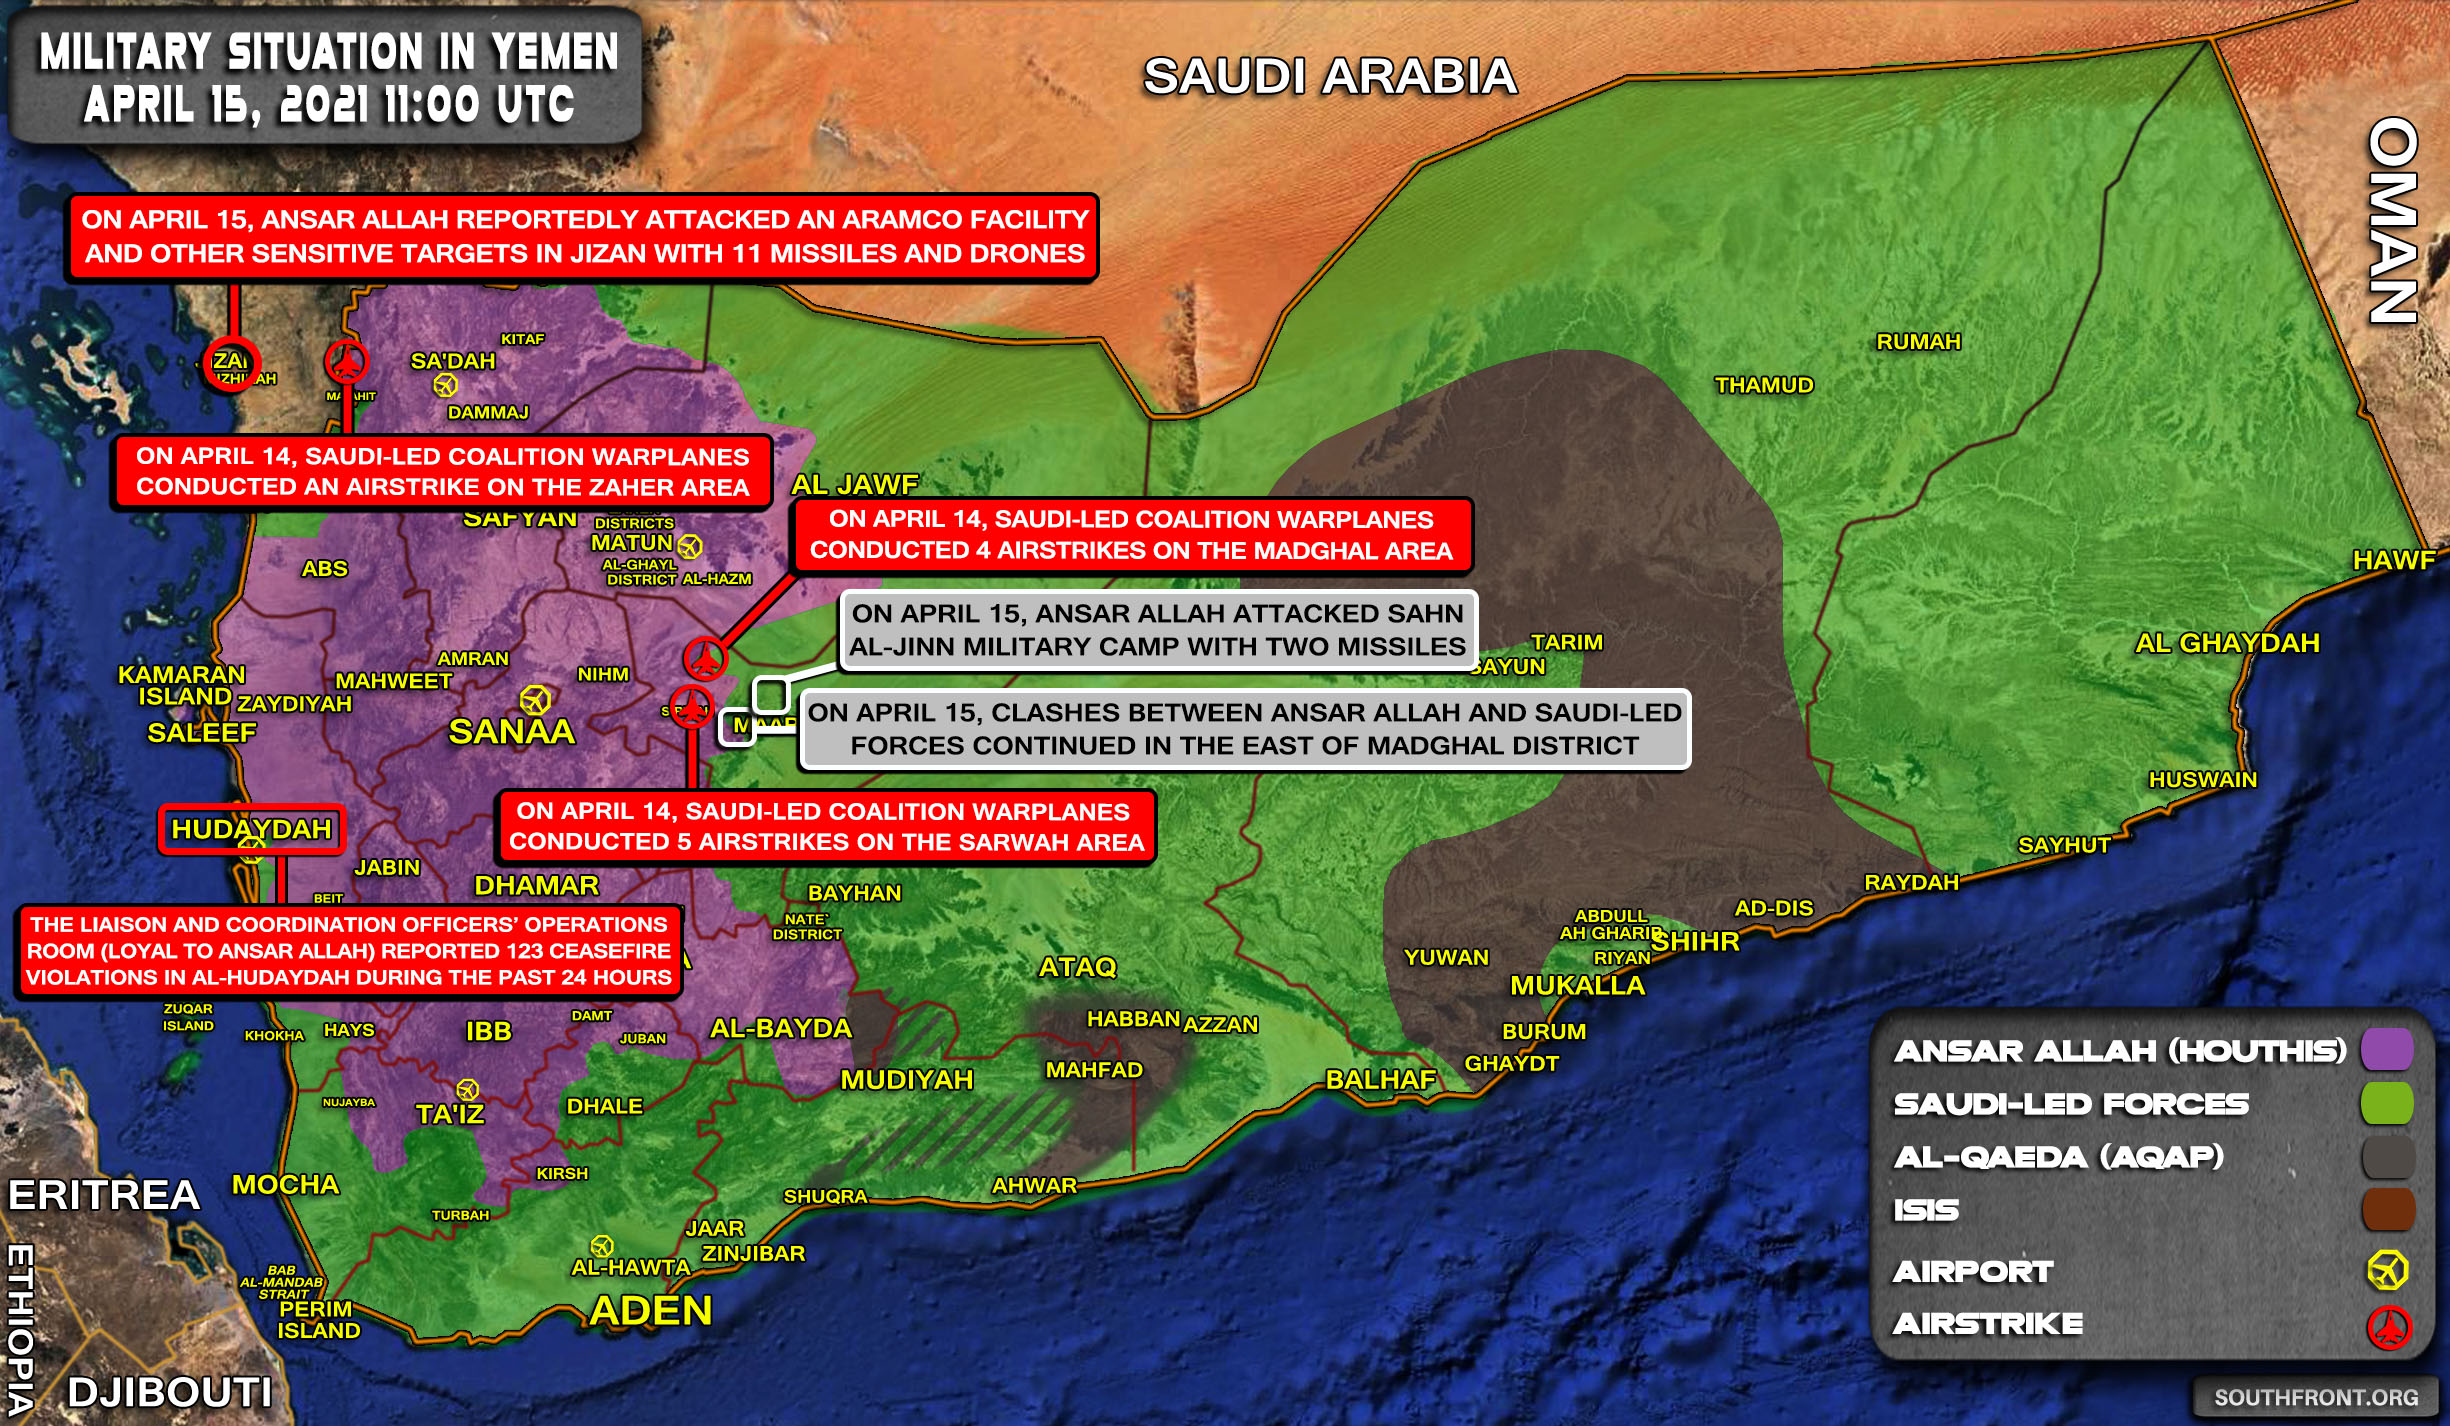 Houthis Targeted Oil Facilities, Patriot Systems In Saudi Arabia With 11 Drones & Missiles (Video, Map Update)